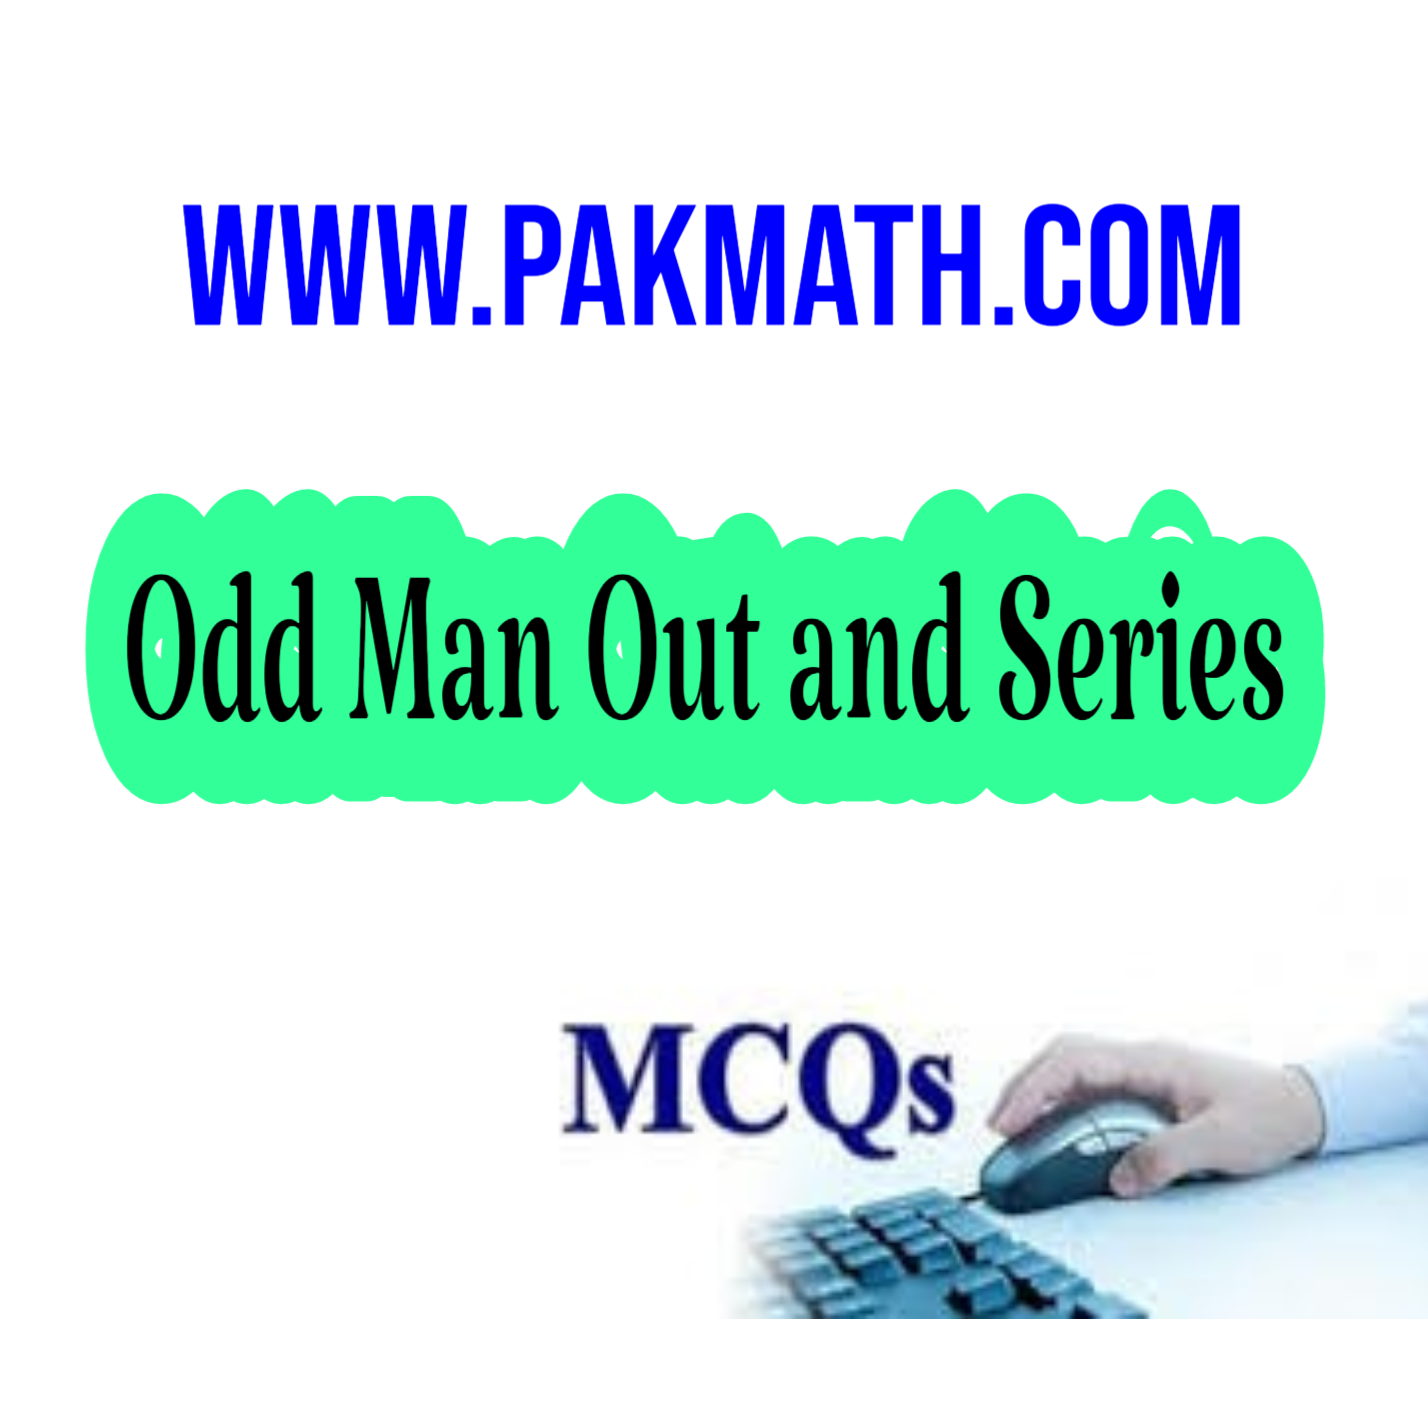 Odd Man Out and Series mcqs test 01